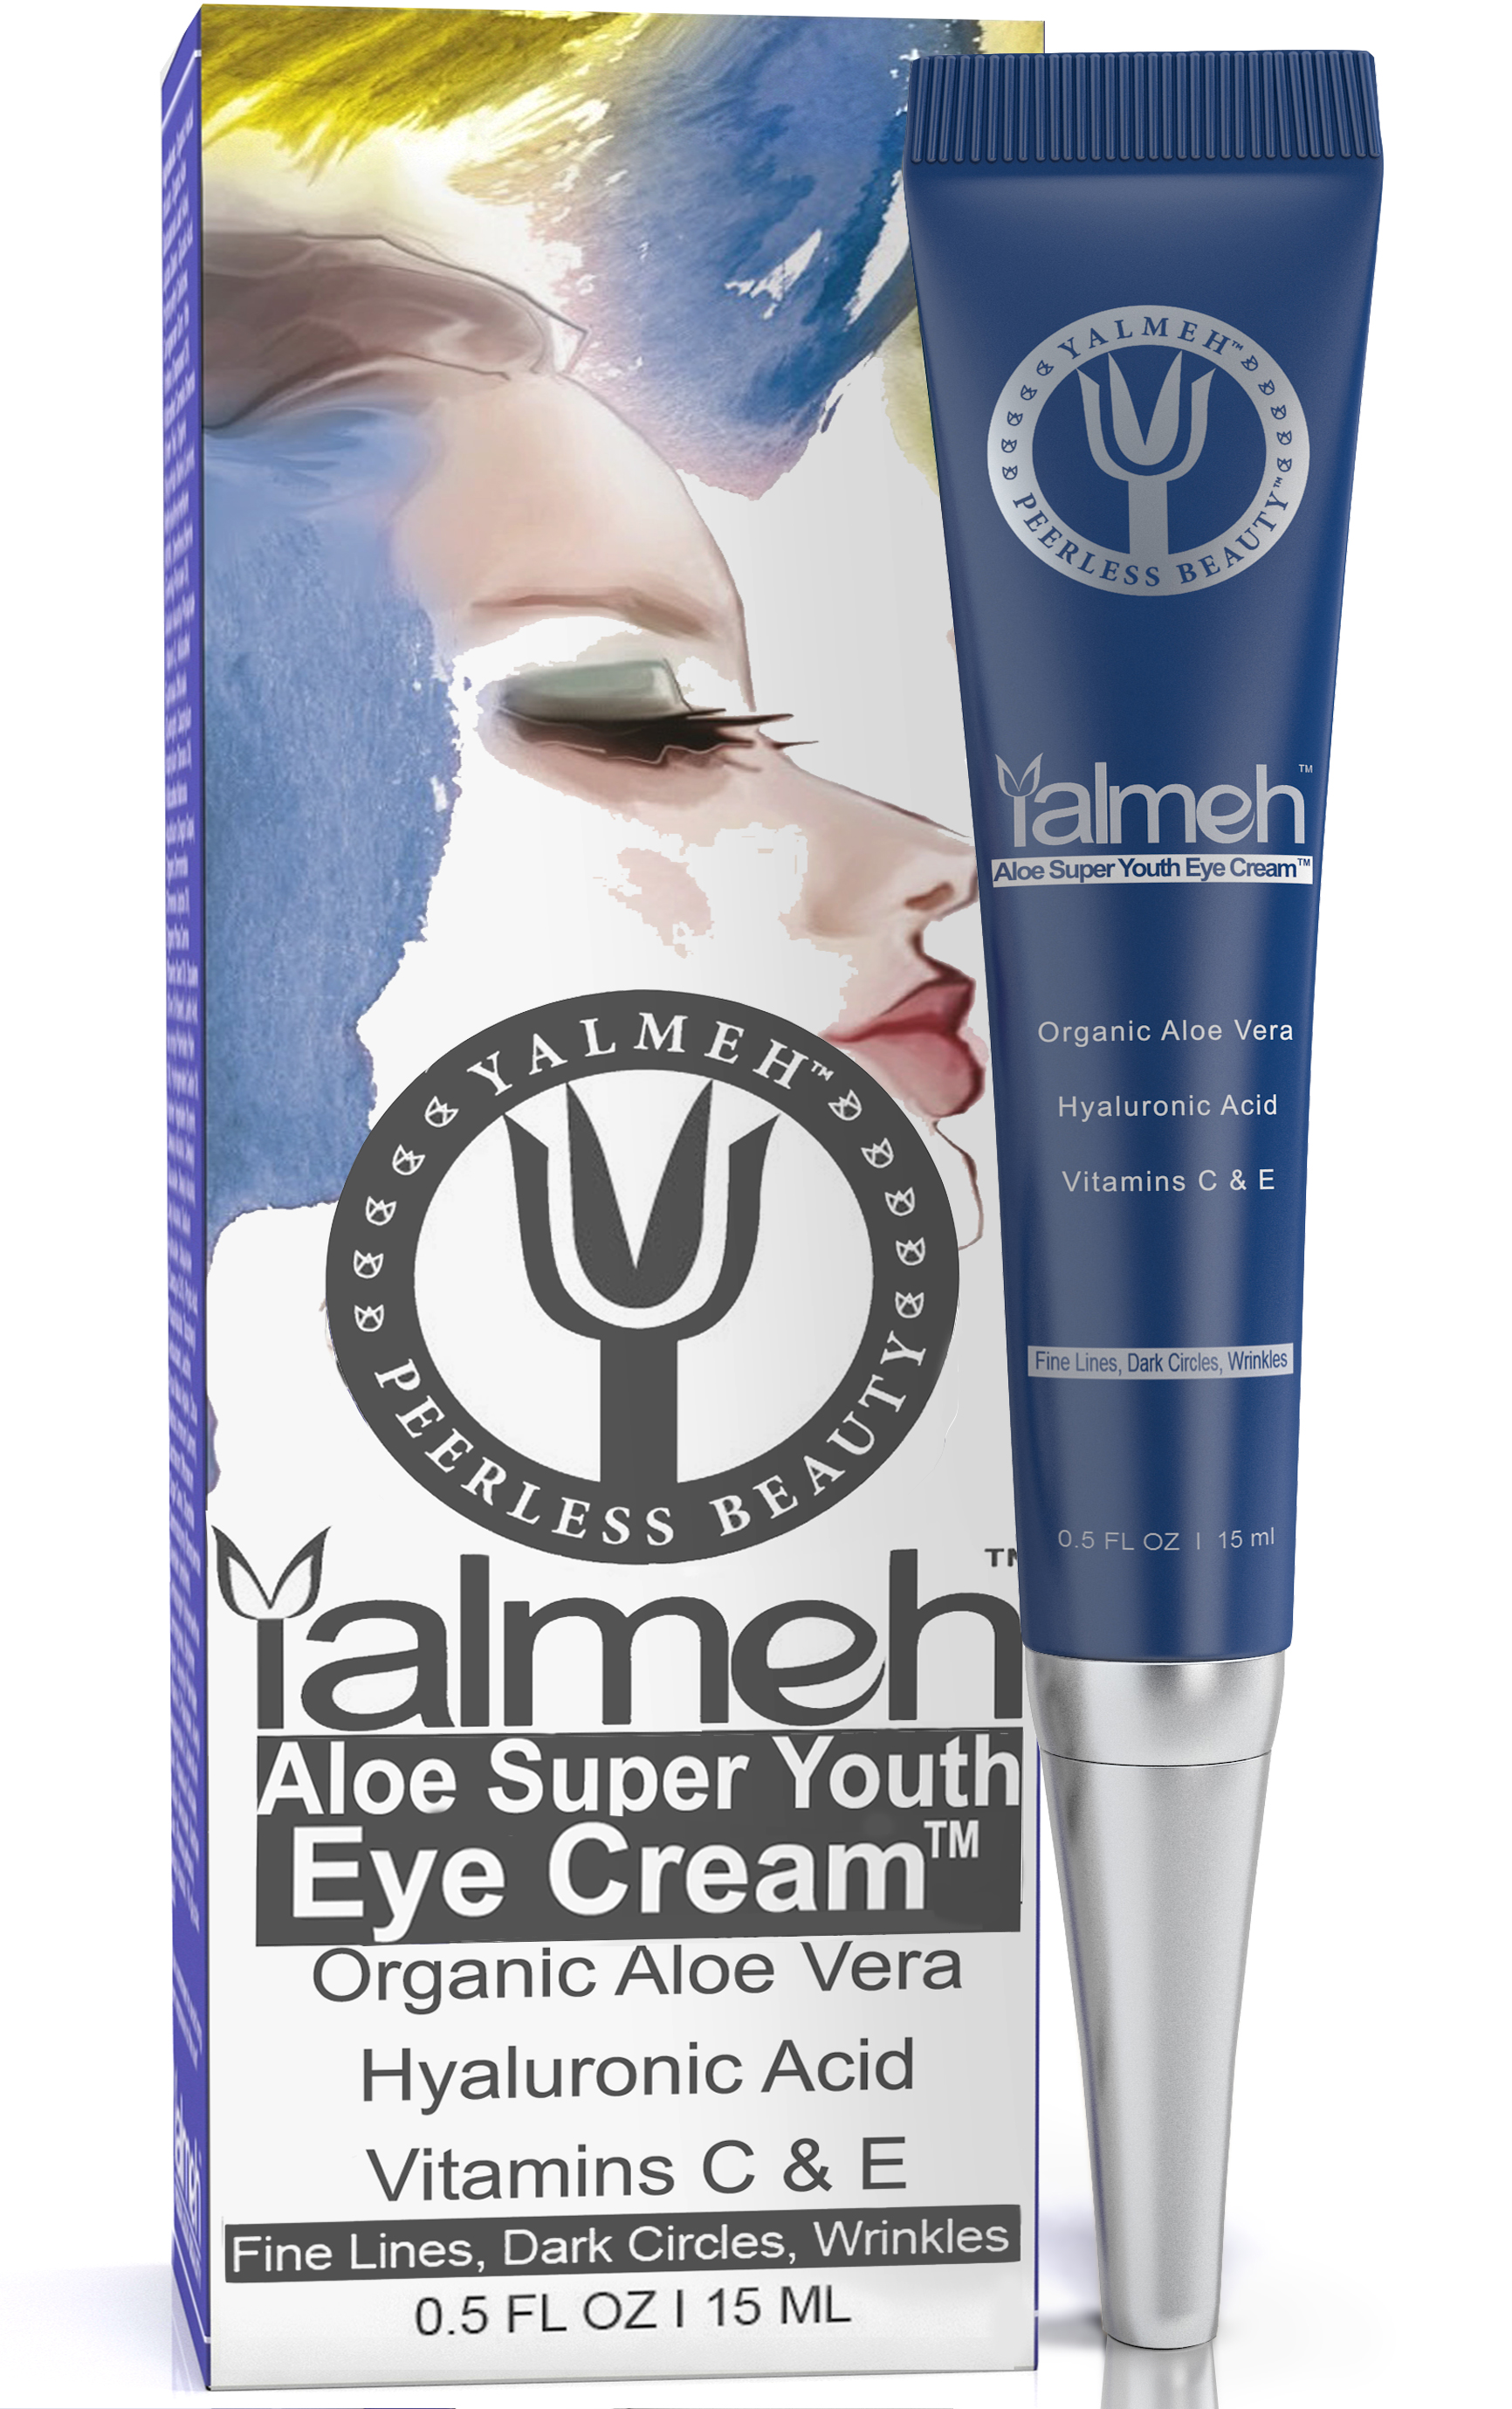 YALMEH Super Youth Eye Cream 15g